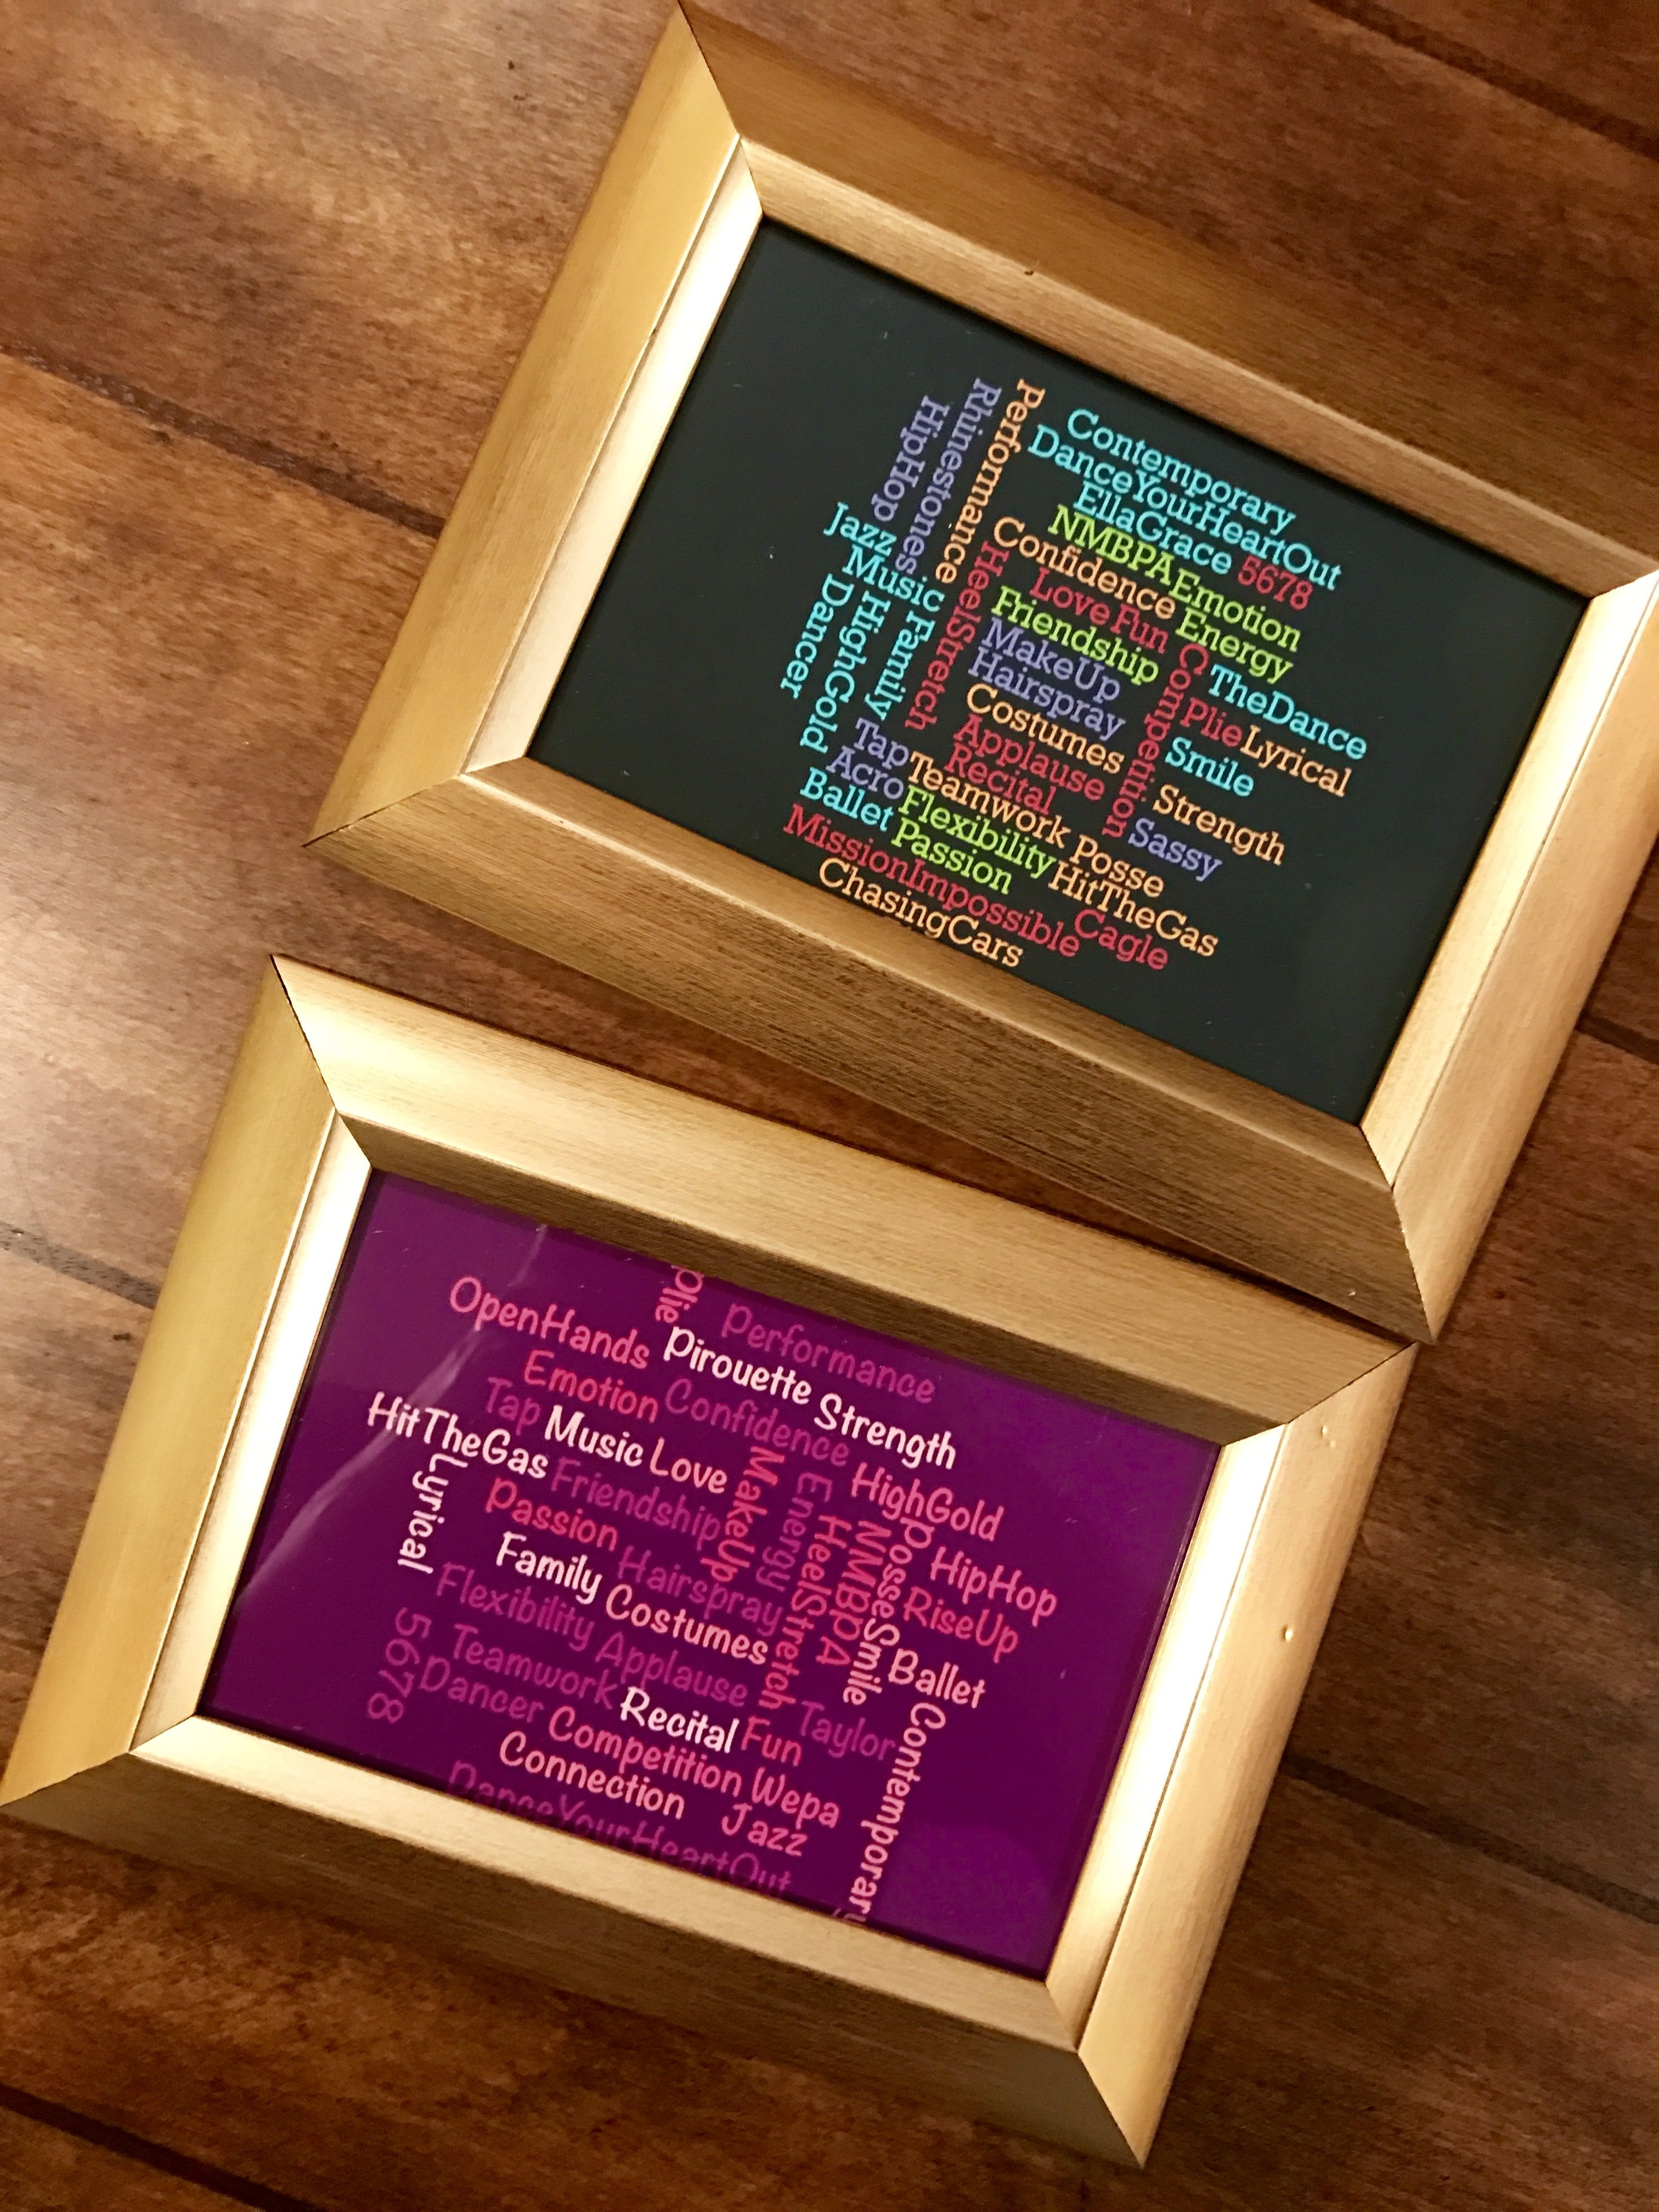 End of the year dance gifts!! Created the word cloud photos on ABCya,